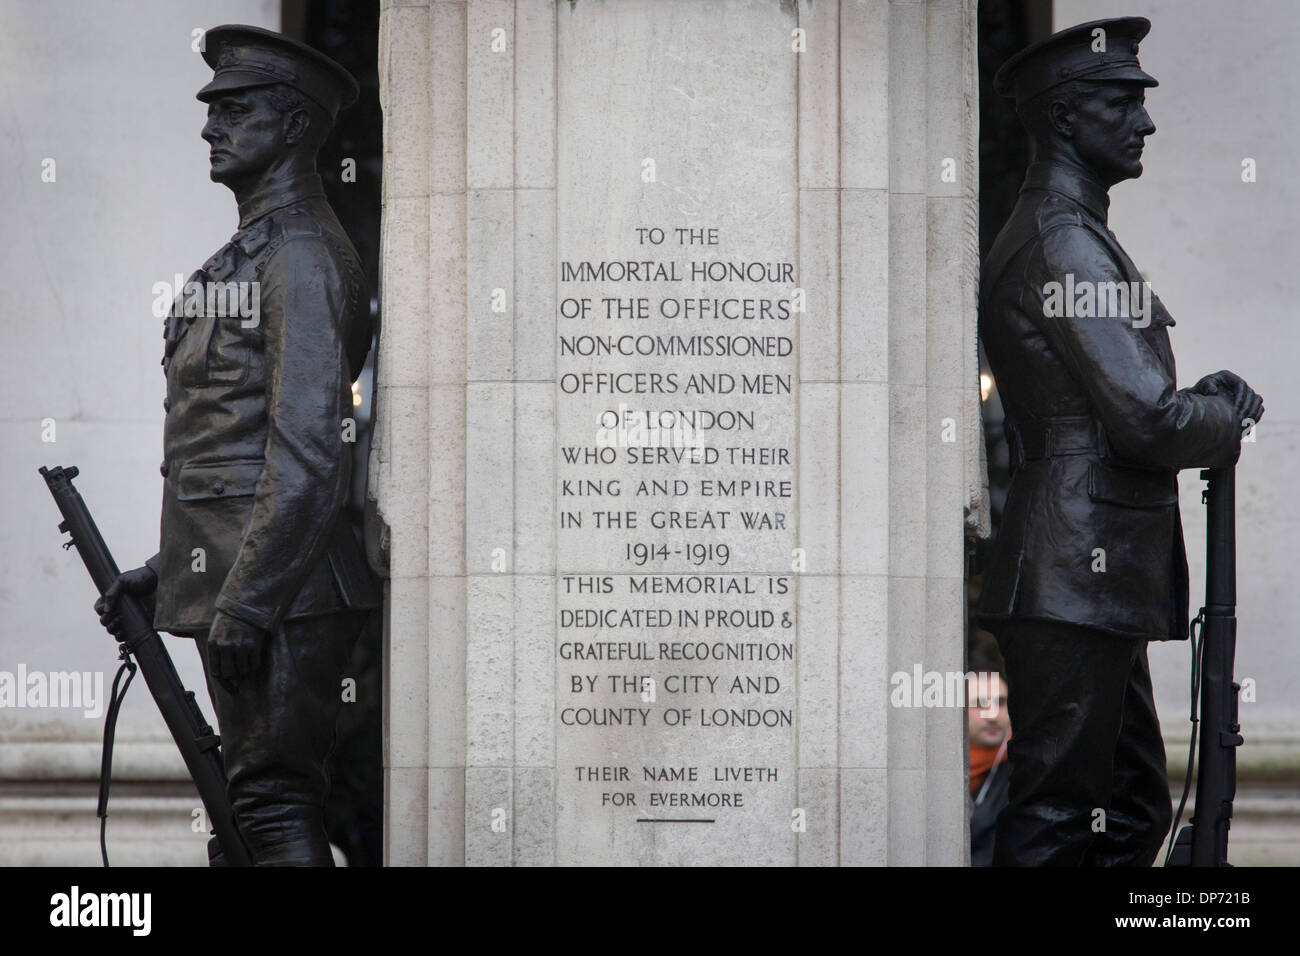 War memorial hero in Cornhill, City of London remembering those killed in the First World War. - Stock Image